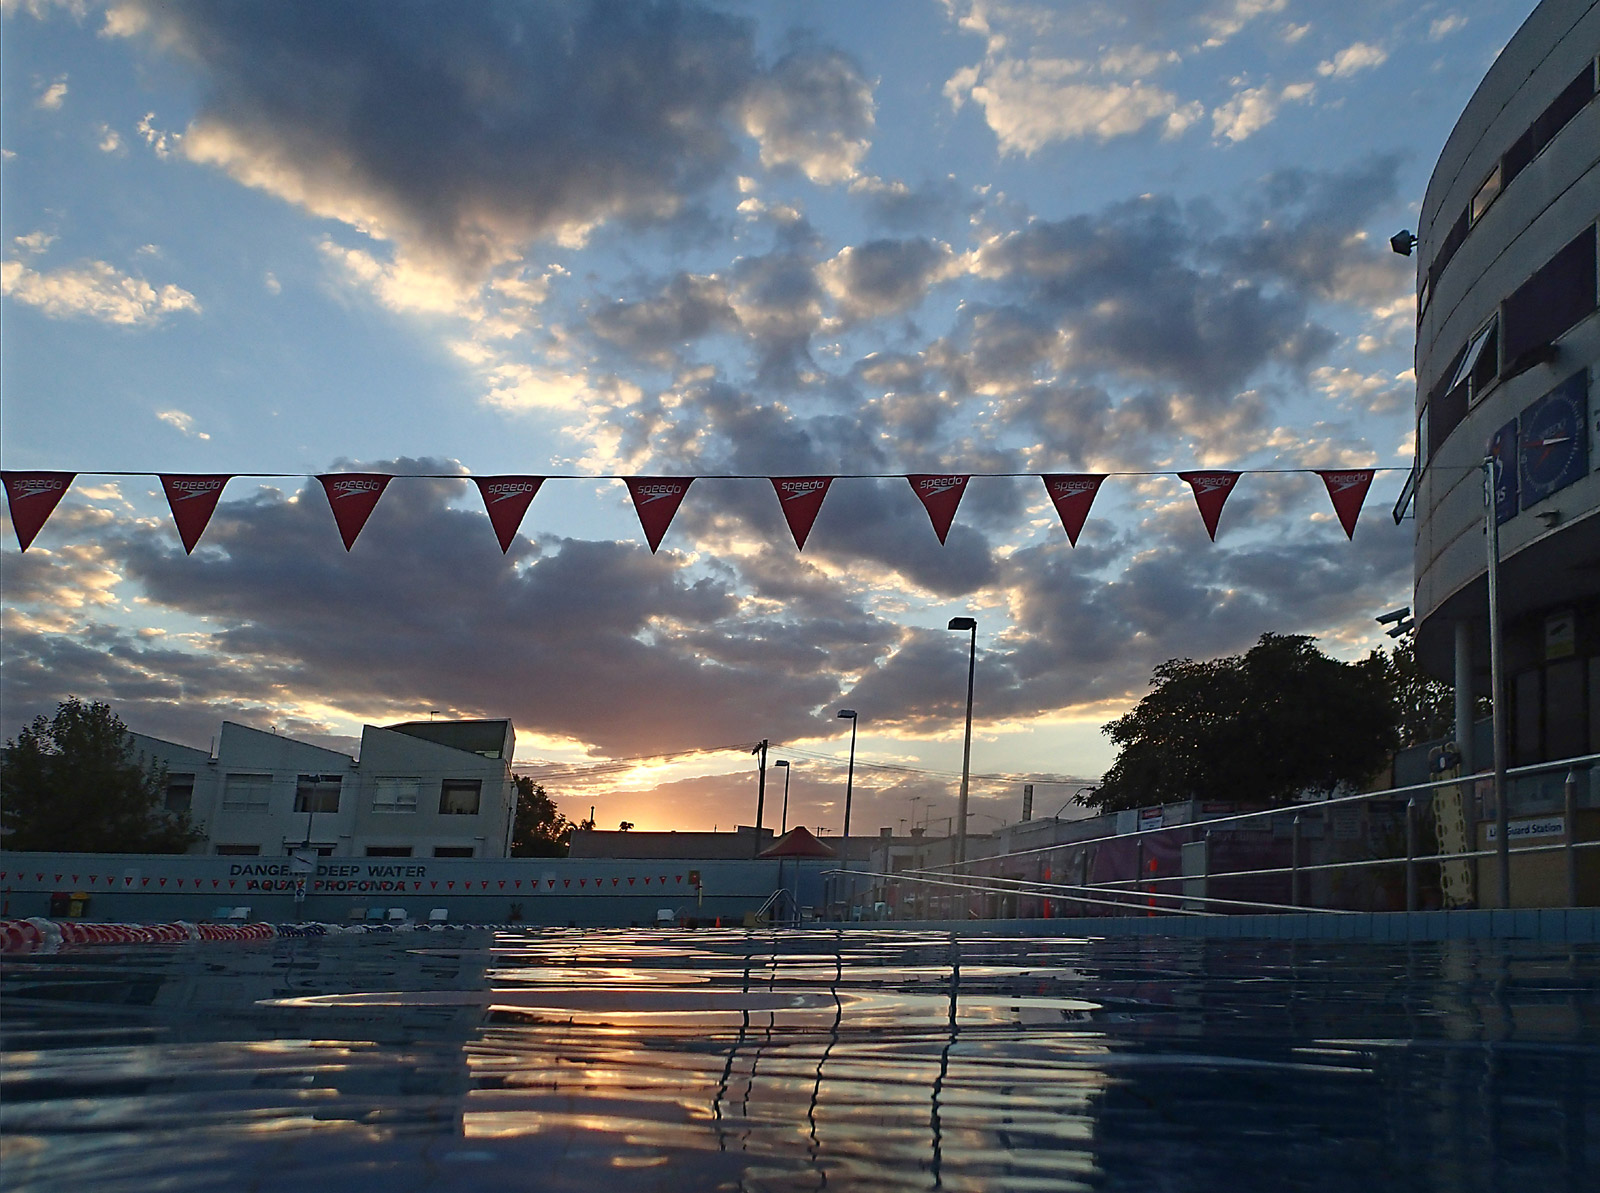 Outdoor swimming pool with sun setting